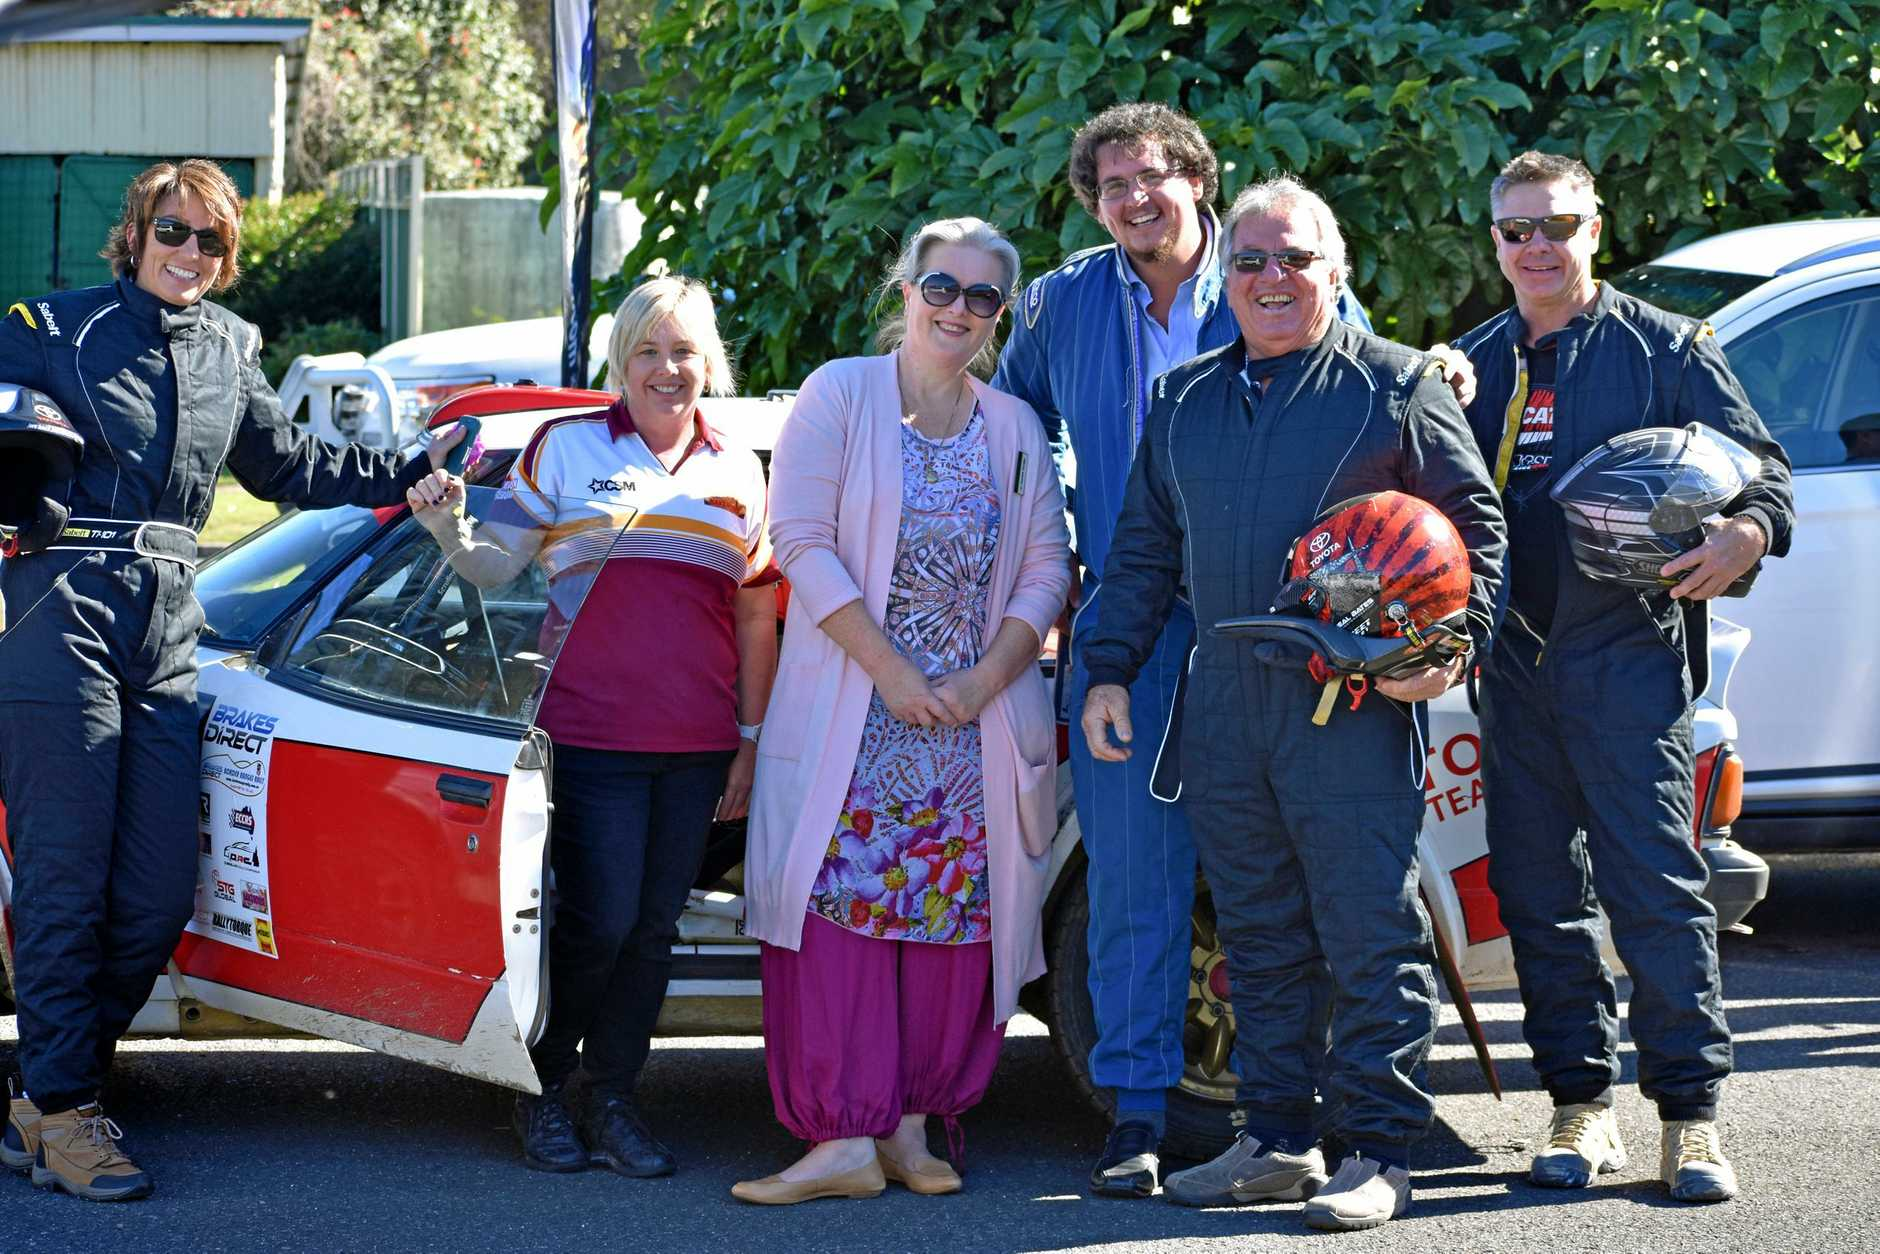 REV IT UP: Kyogle Councillor Kylie Thomas, Jo Sodiro from Dave's Bakehouse, mayor Danielle Mulholland, Clr Hayben Doolan, Clr John Burley and Scott Facey from the Commercial Hotel at the Border Ranges Rally practice day at Wiangaree.